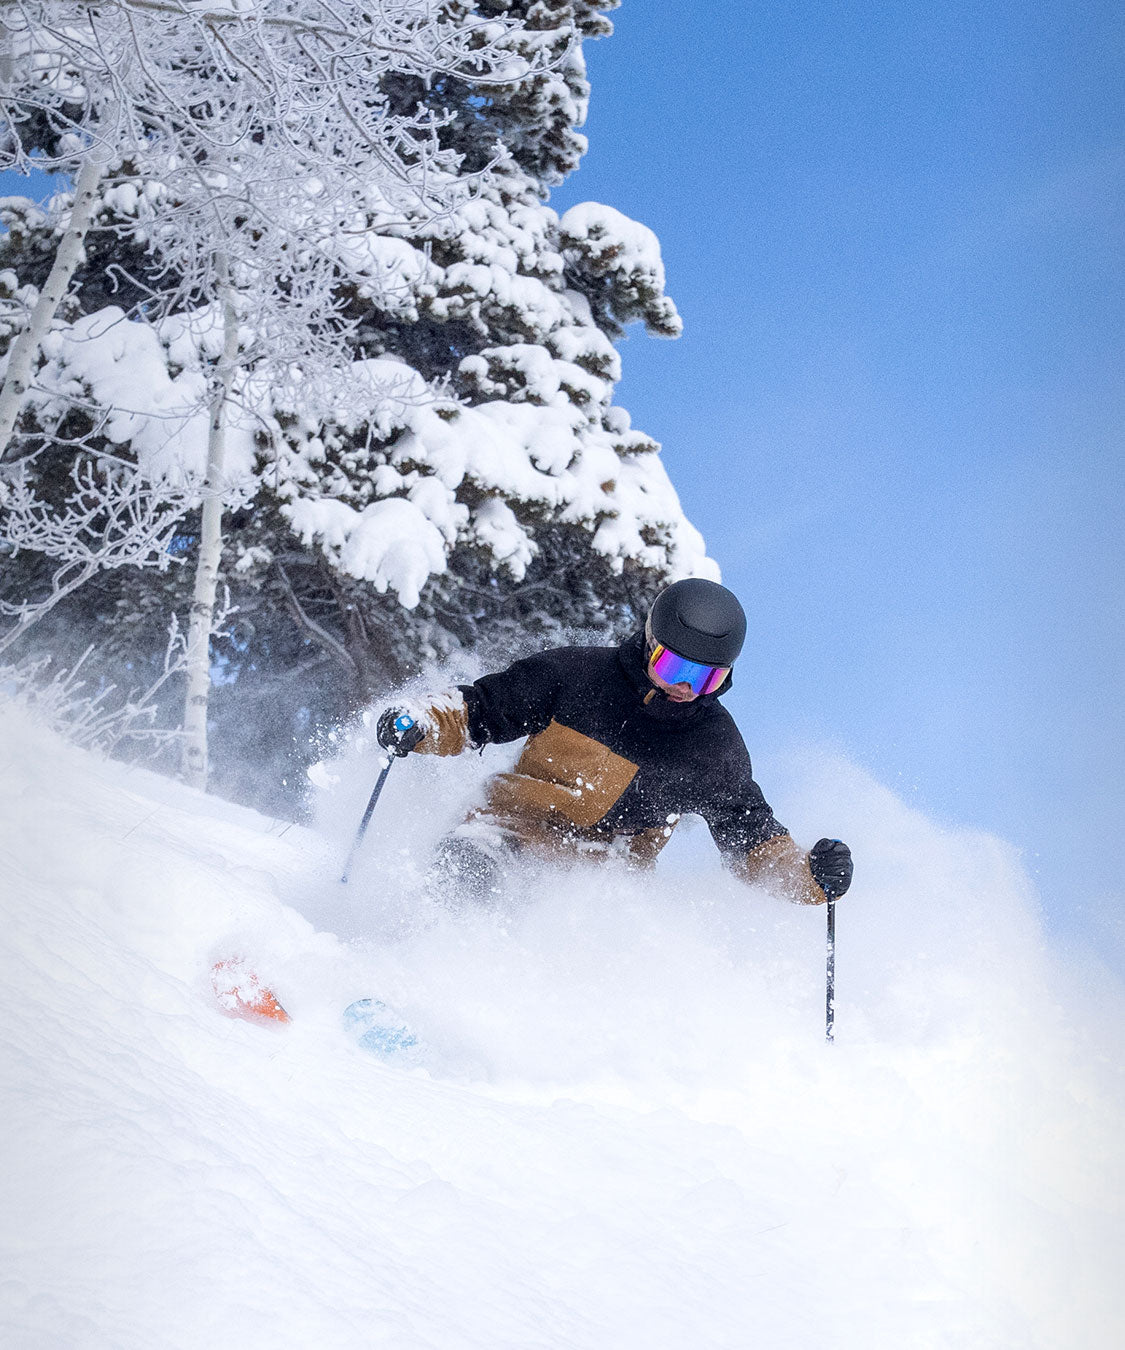 powder turn in the Hayden ski jacket in front of snowy mountains